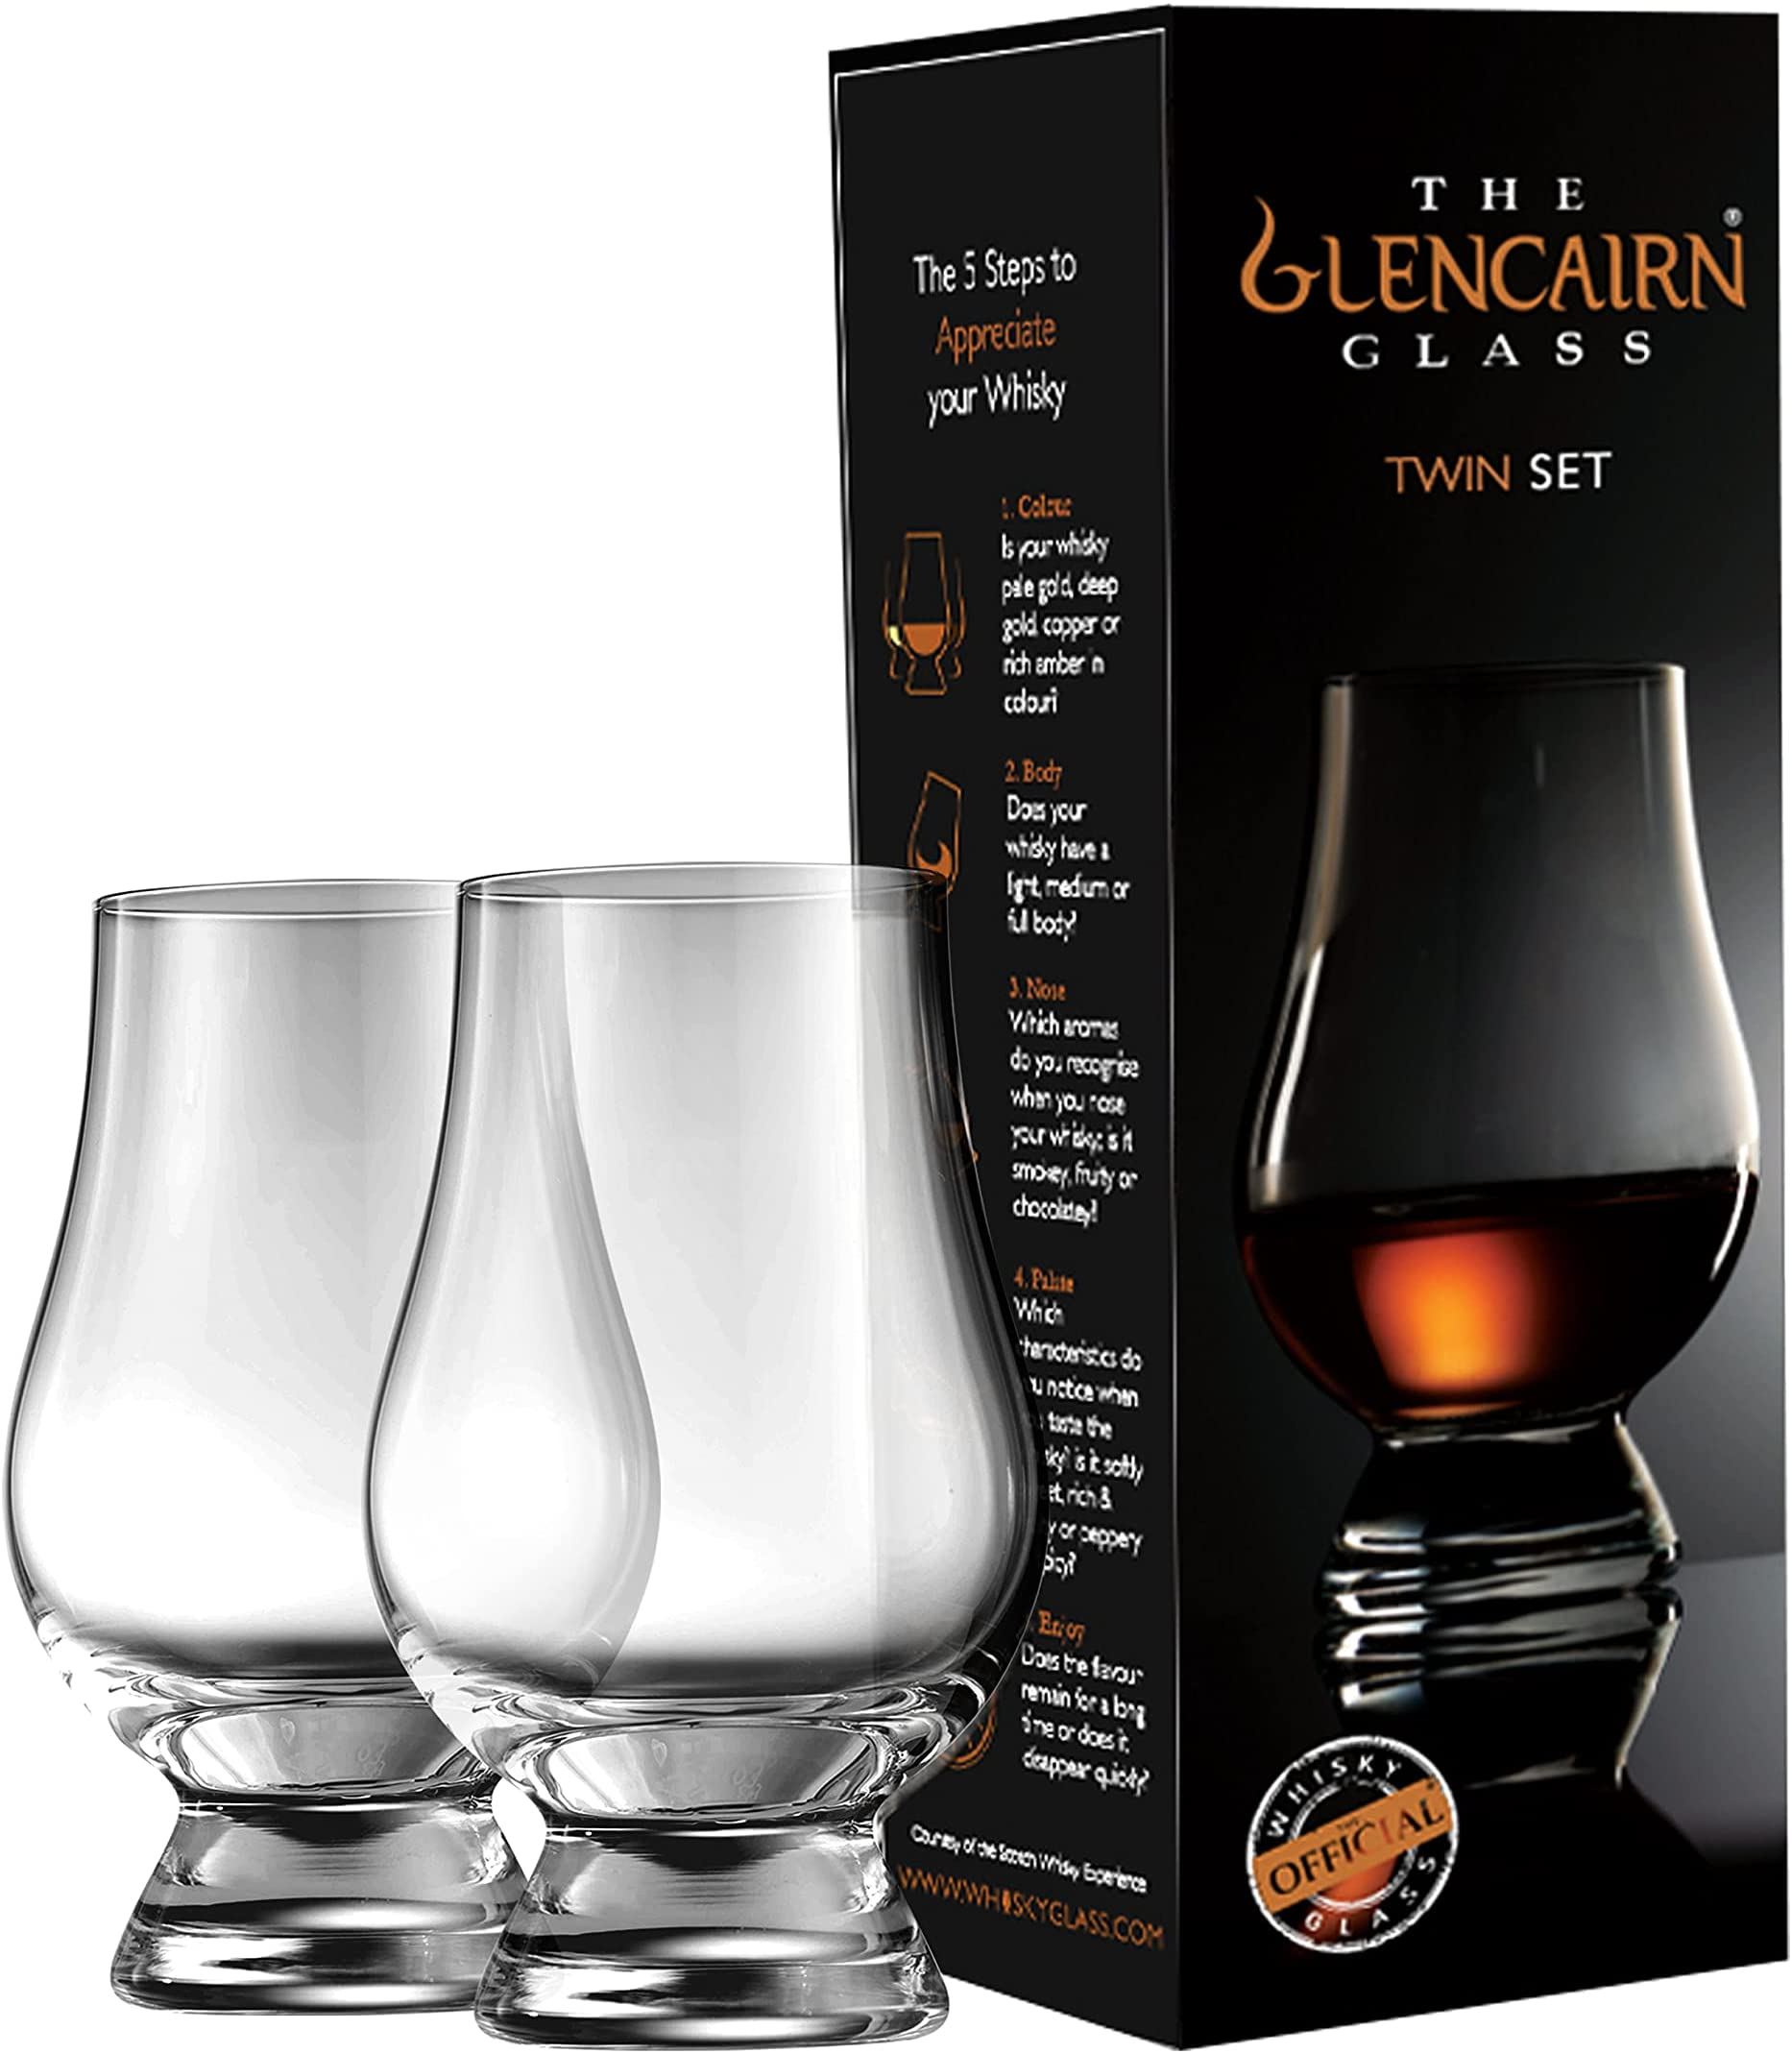 Glencairn Whisky Glass in Gift Carton, Set of 2 in Twin Gift Carton